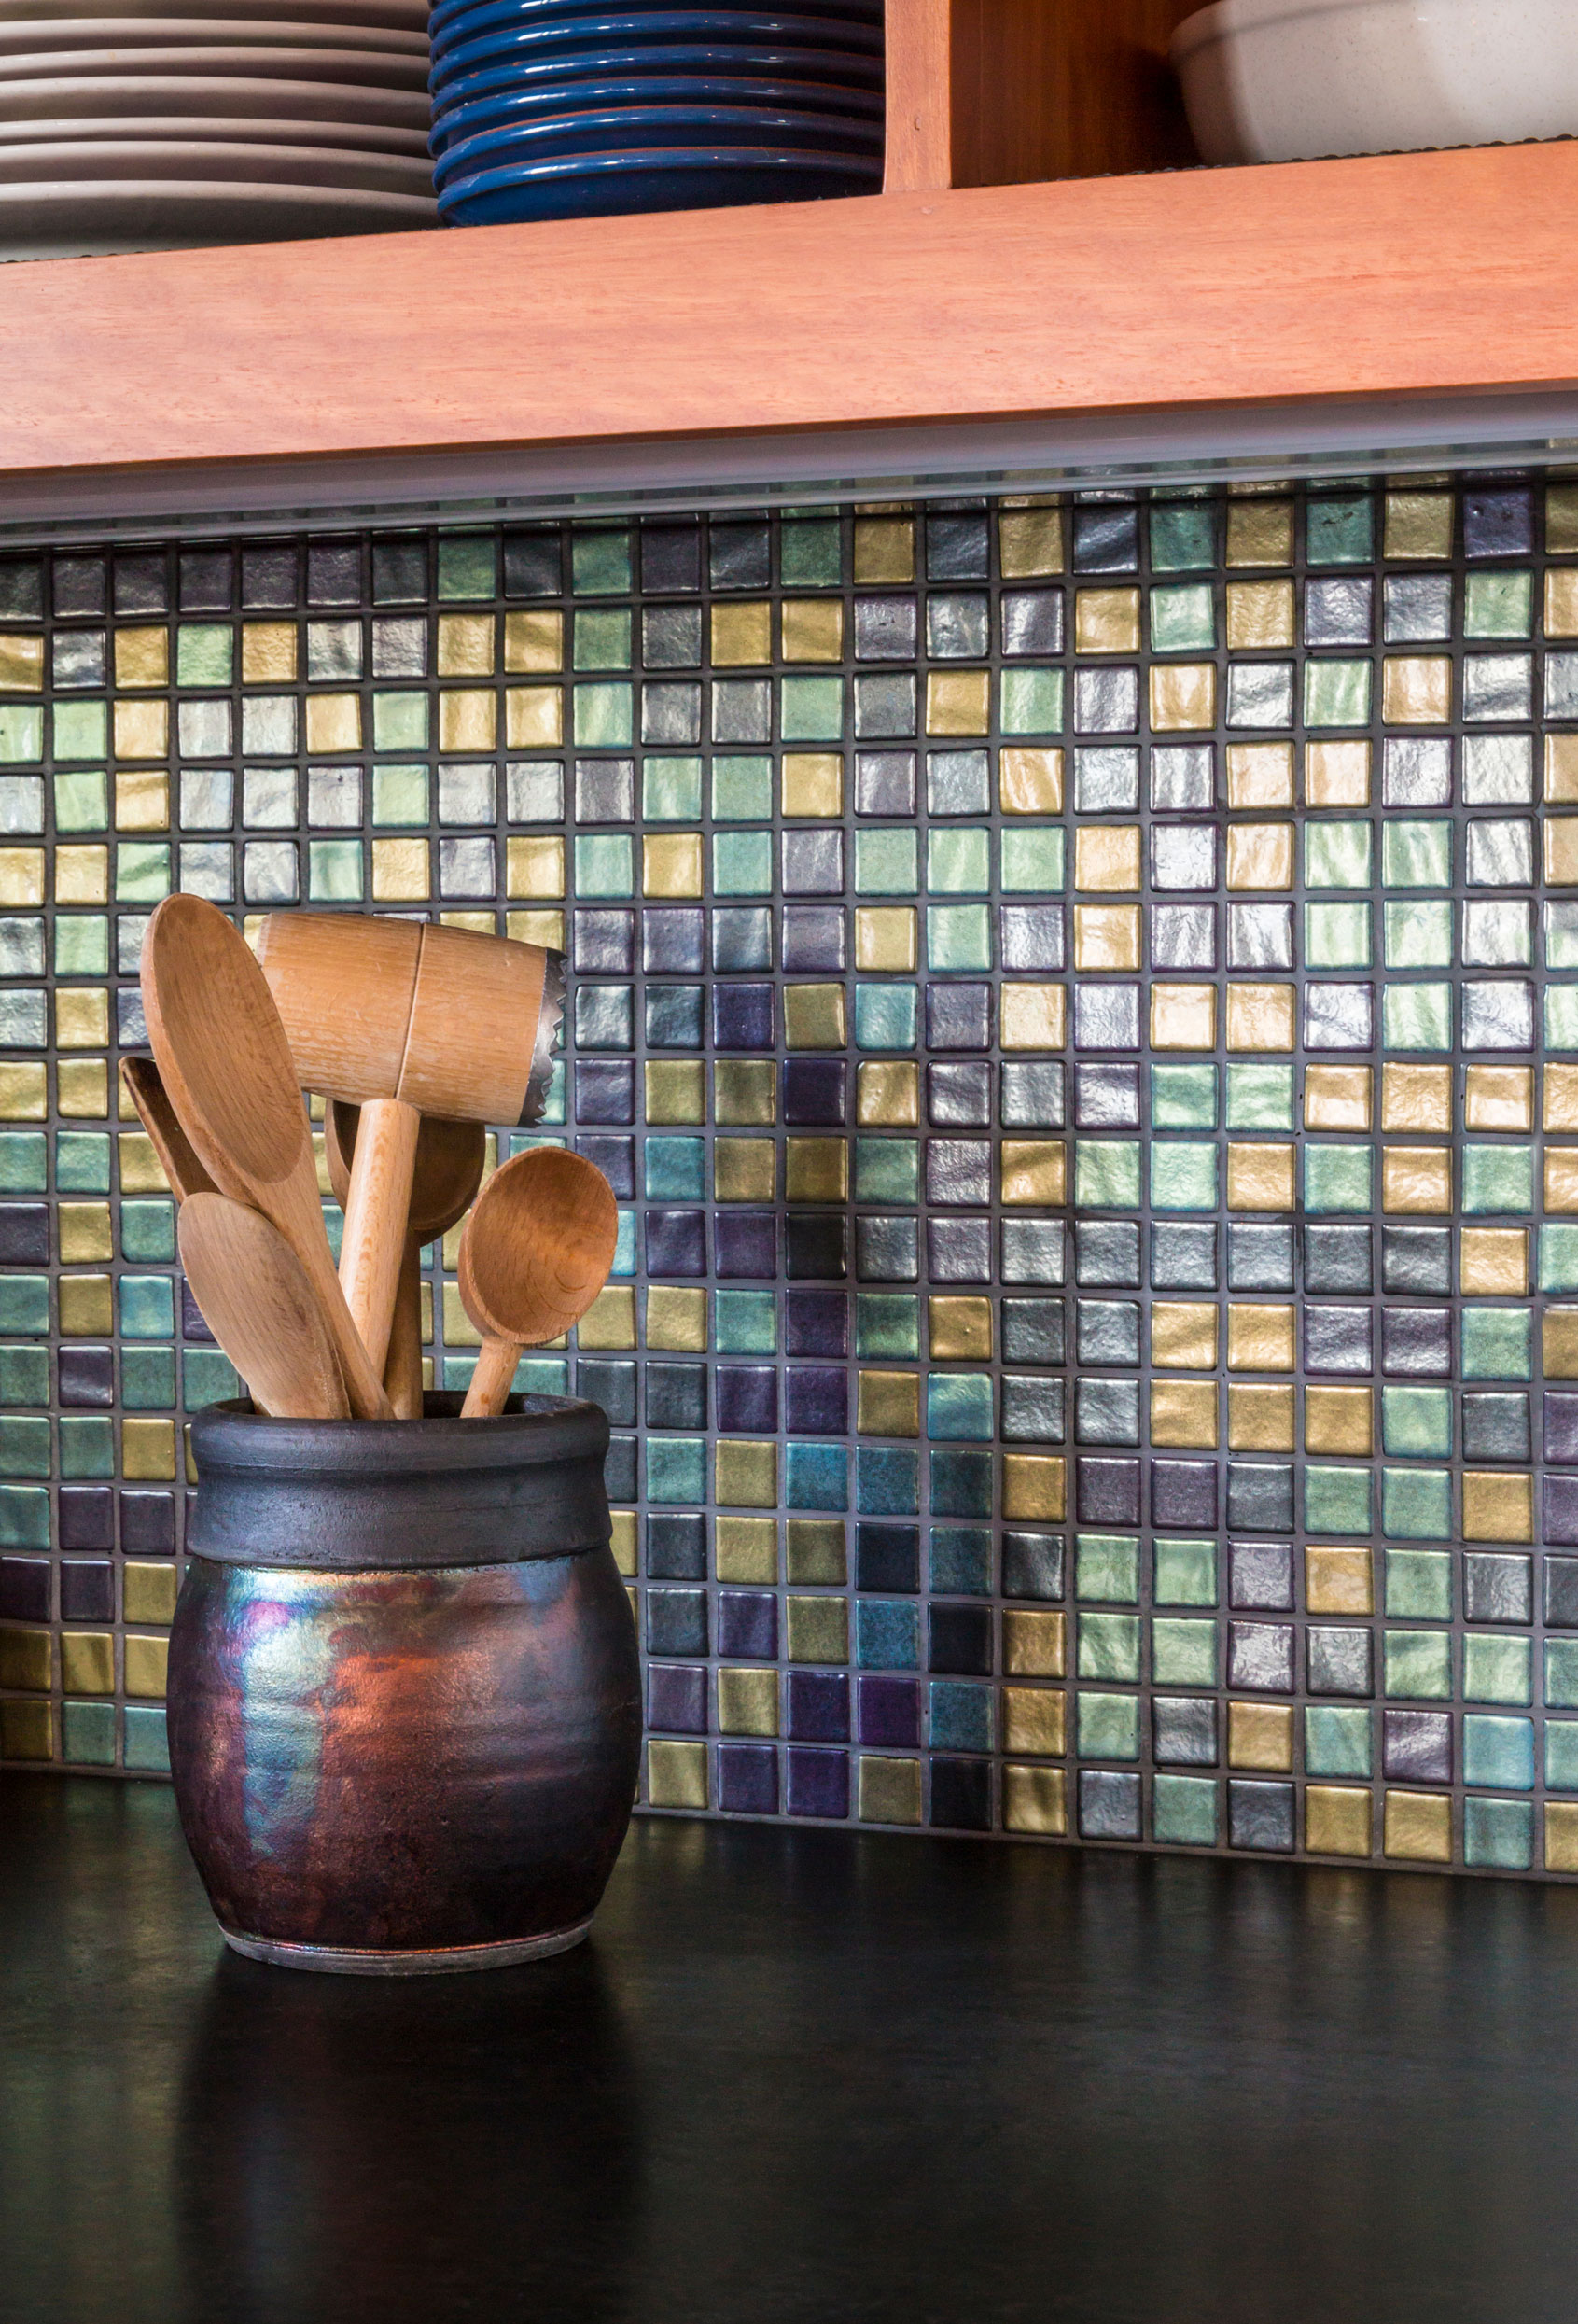 A beautiful kitchen with mosaic tiles on its walls.